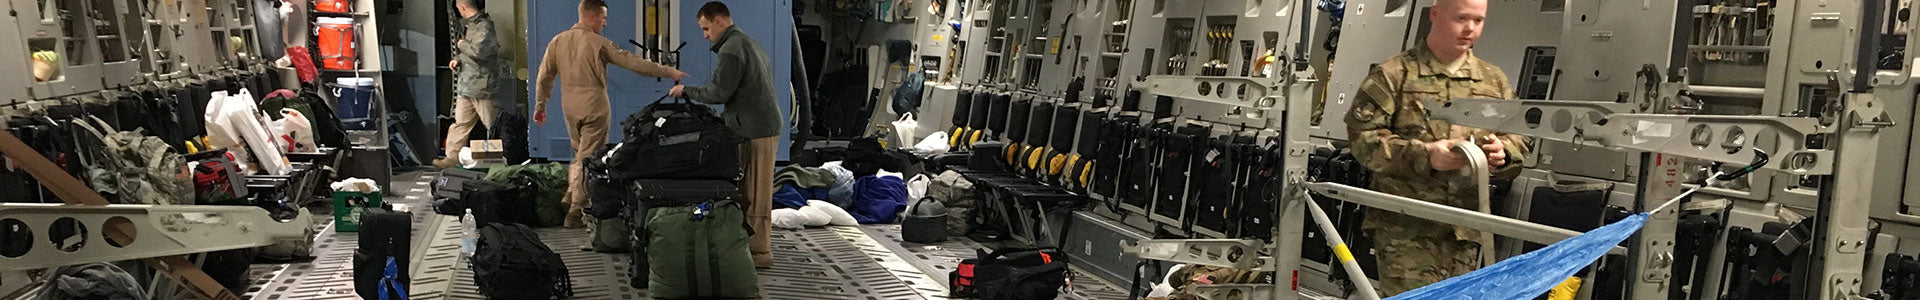 Hammock Inside Military Plane